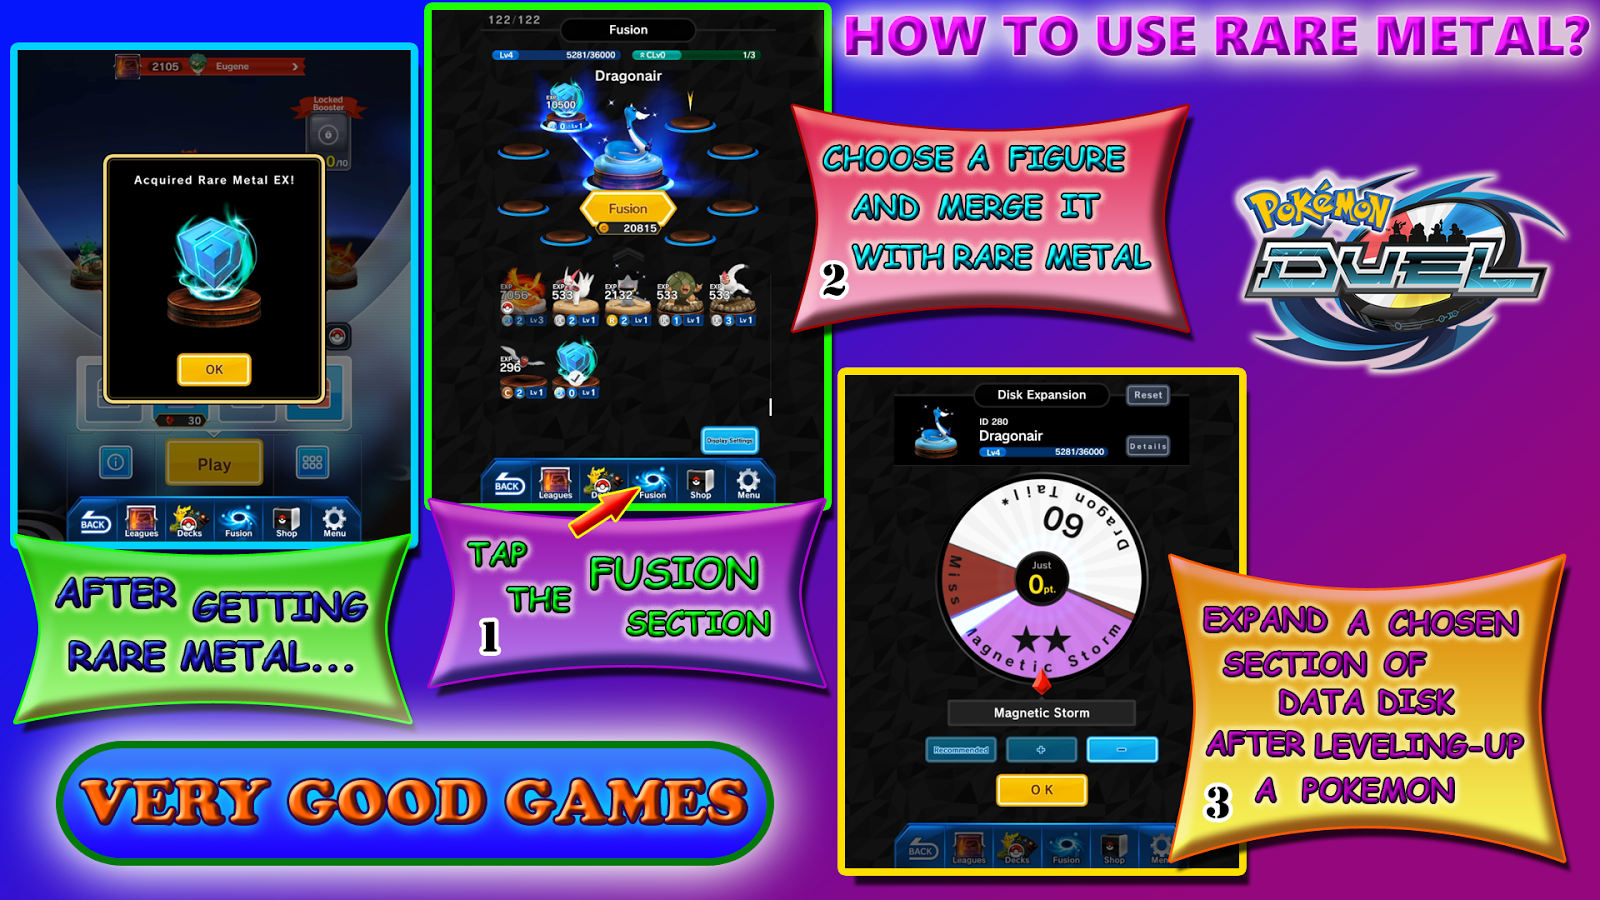 very good games cubes ingots and rare metal in pokemon duel